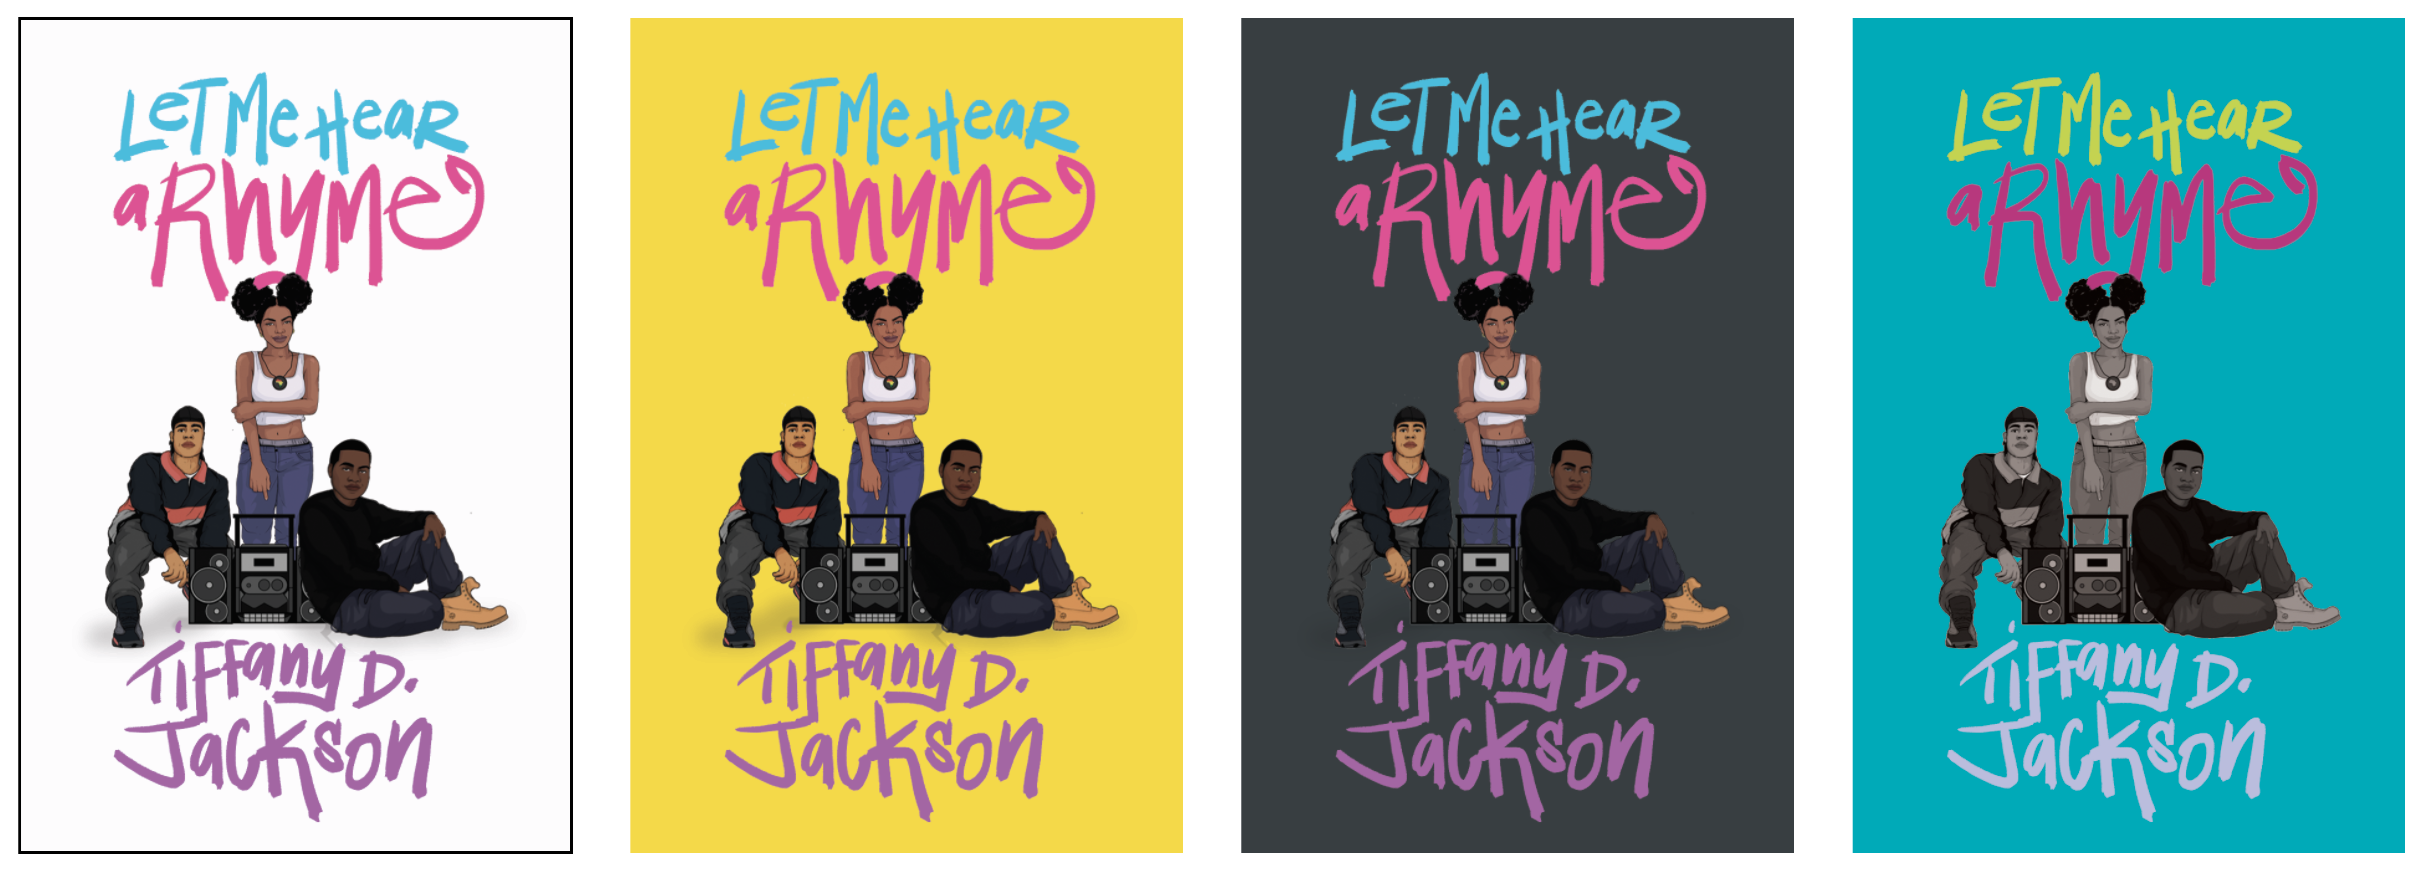 Behind the Design: 'Let Me Hear a Rhyme' by Tiffany D  Jackson